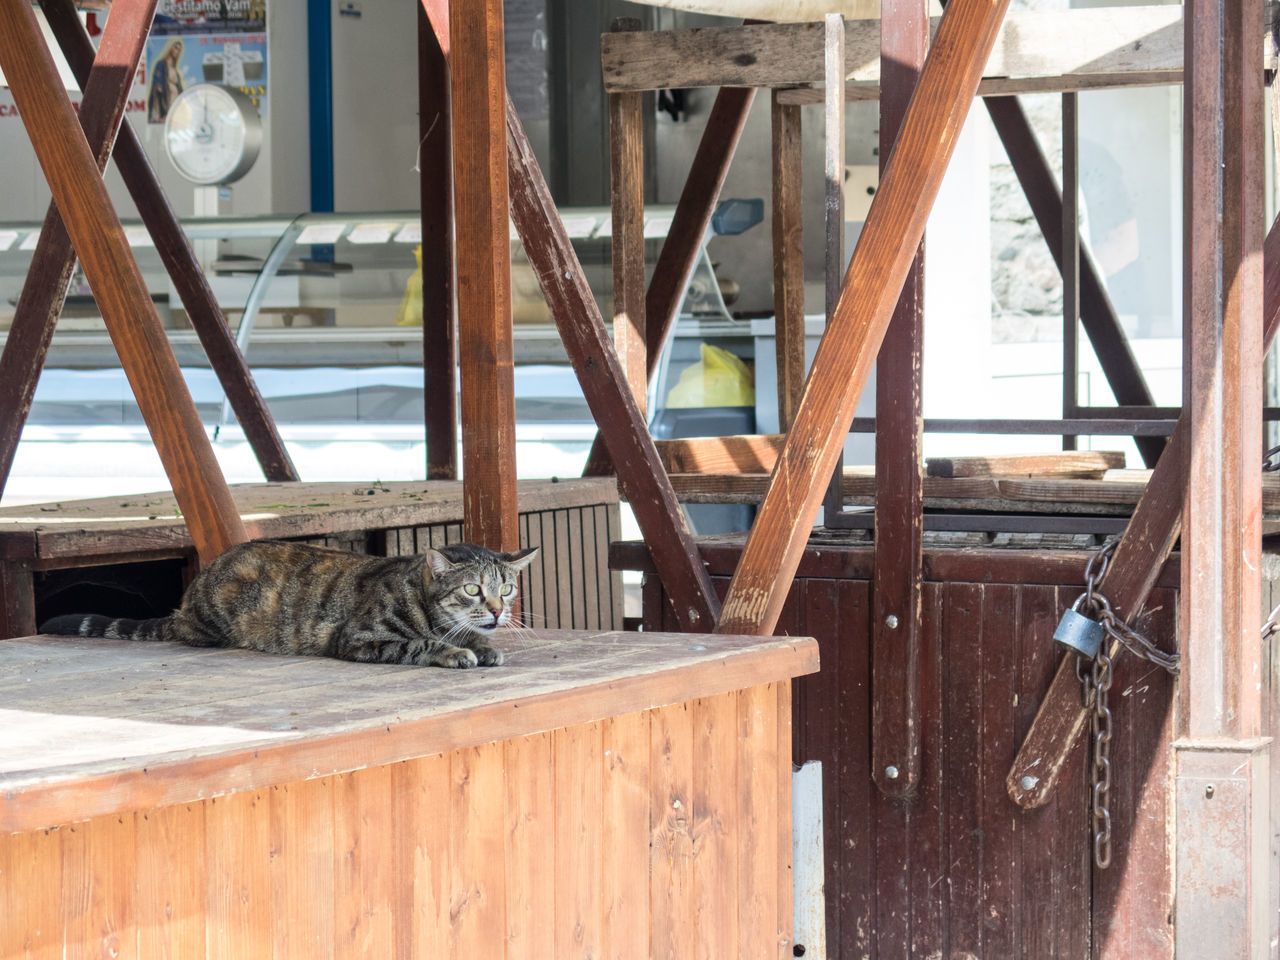 animal themes, one animal, domestic cat, mammal, domestic animals, day, feline, pets, wood - material, no people, outdoors